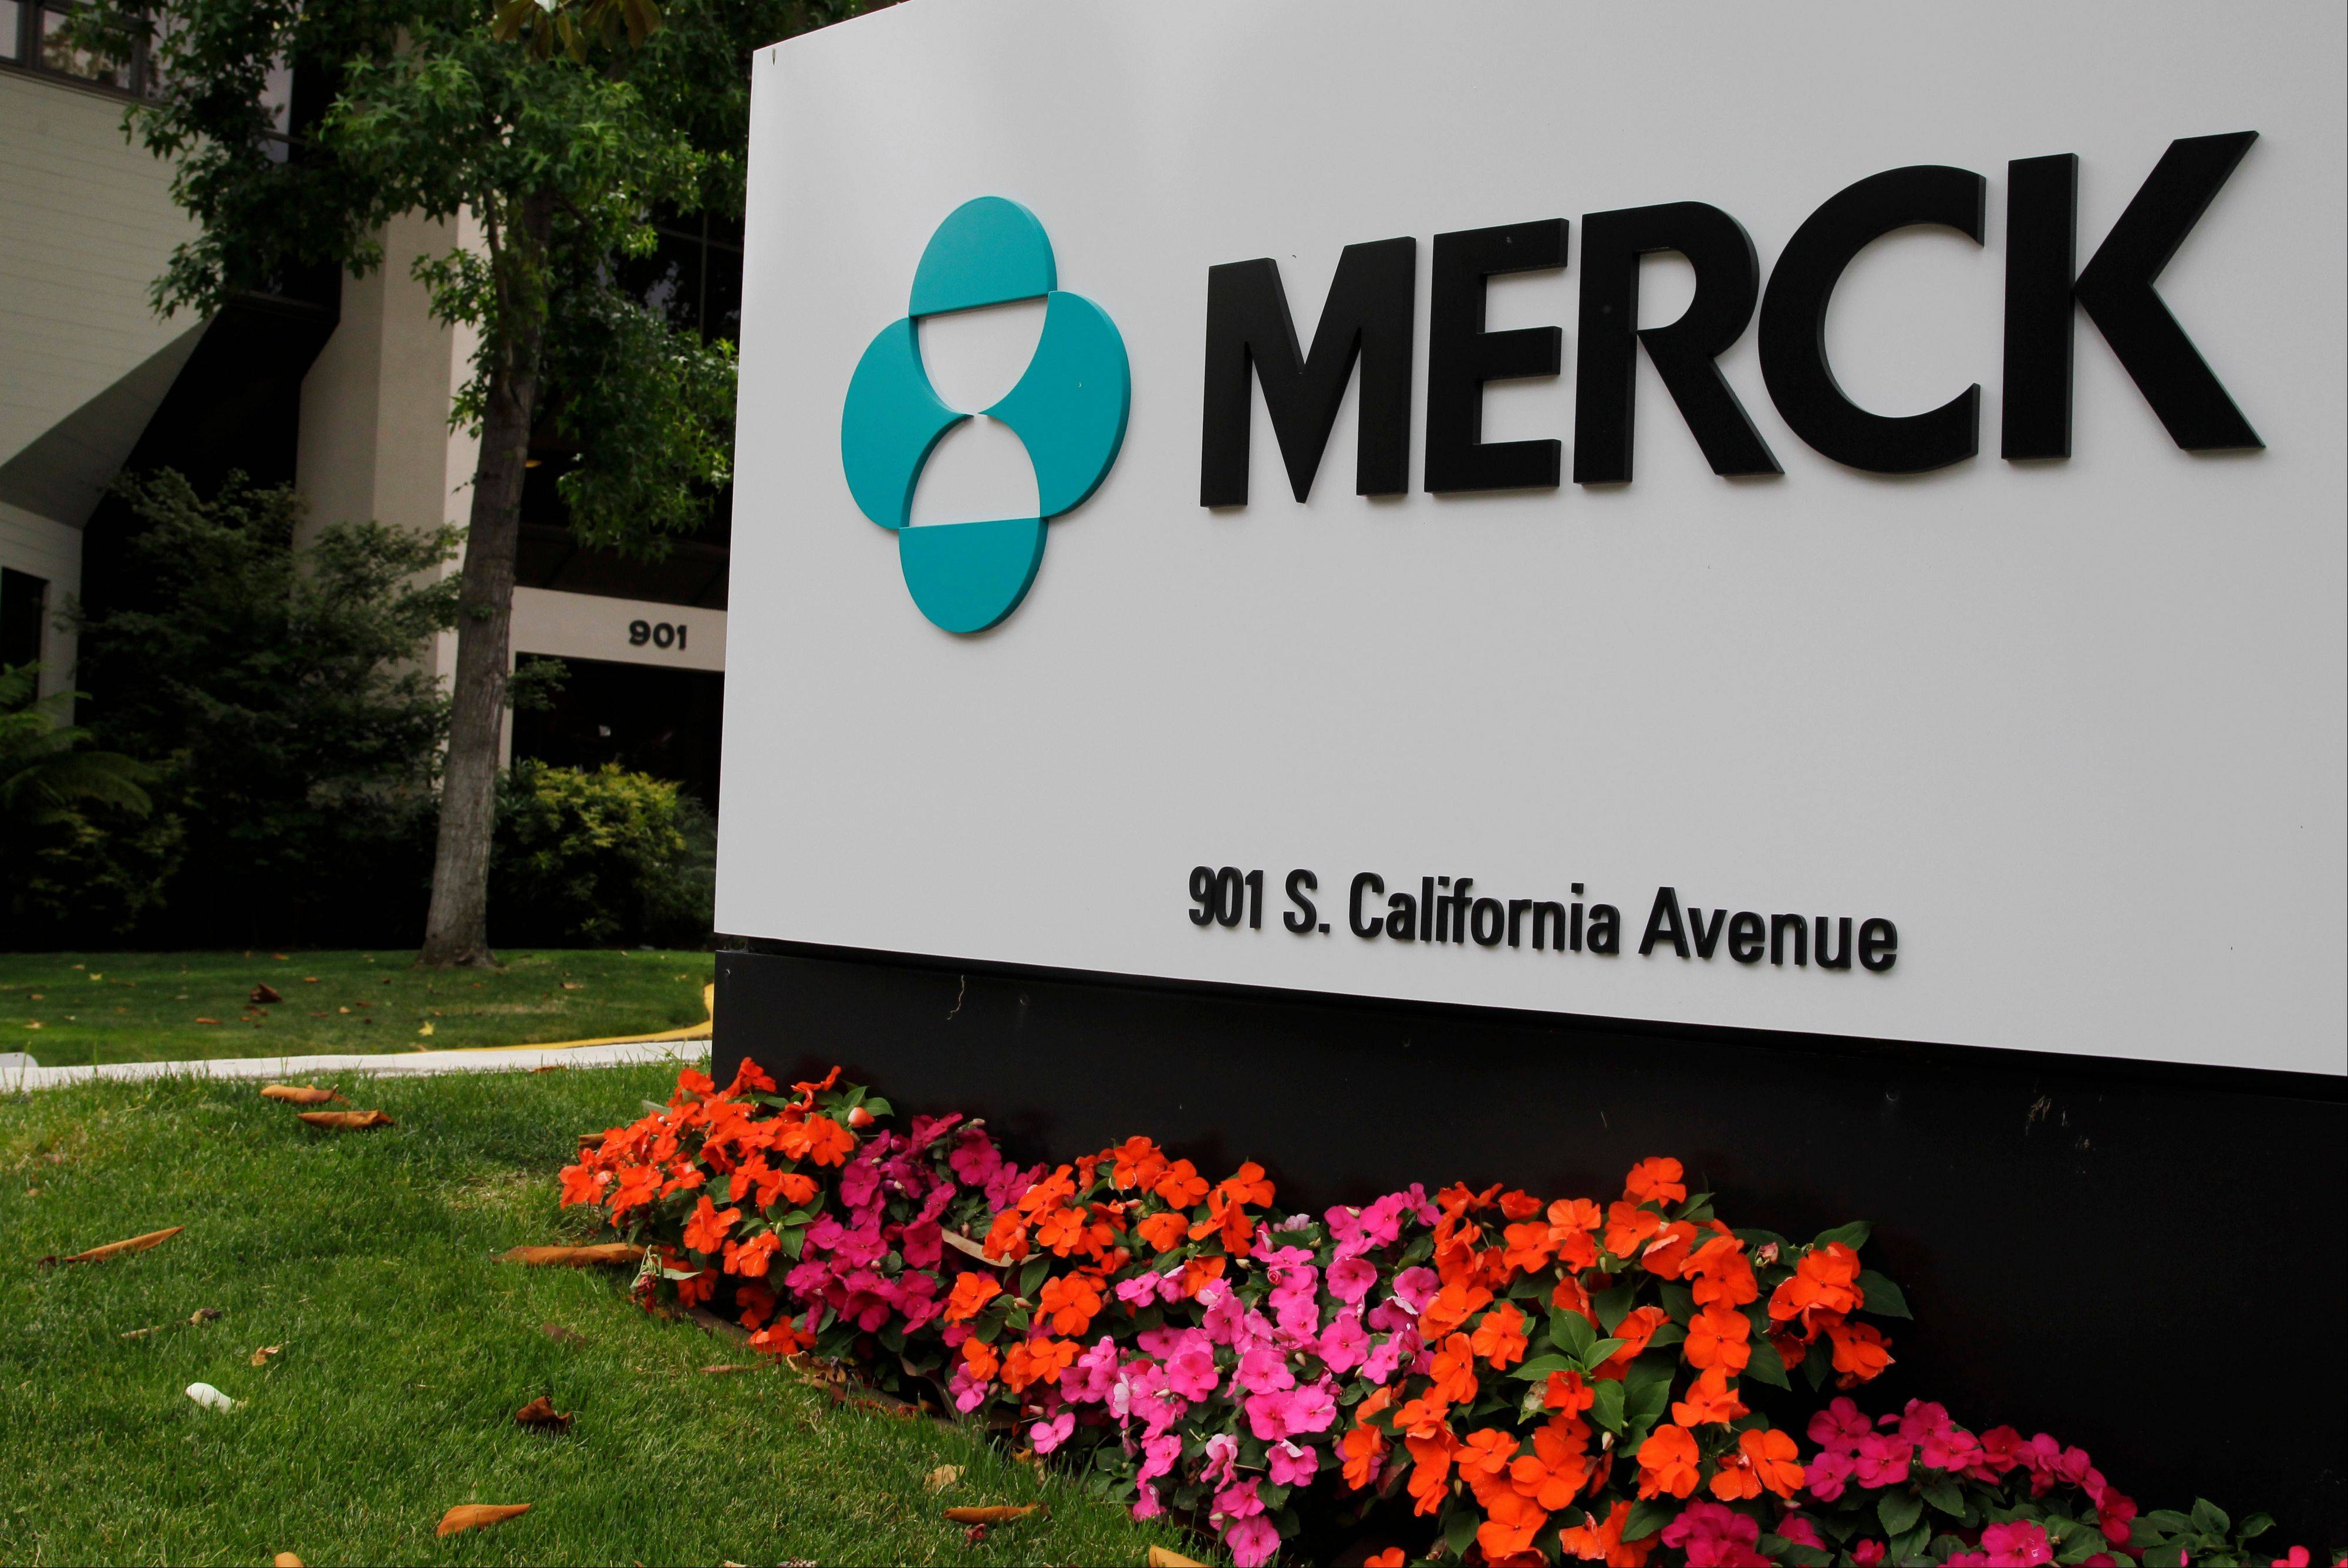 Drugmaker Merck & Co. said Friday, Oct. 26, 2012 that third-quarter profit rose 2 percent as reduced spending on overhead offset lower sales due to new generic competition for its top-selling drug. The company beat Wall Street's profit expectations and narrowed its 2012 profit forecast, to a range of $2.08 to $2.24 per share, from its July forecast of $2.04 to $2.30.